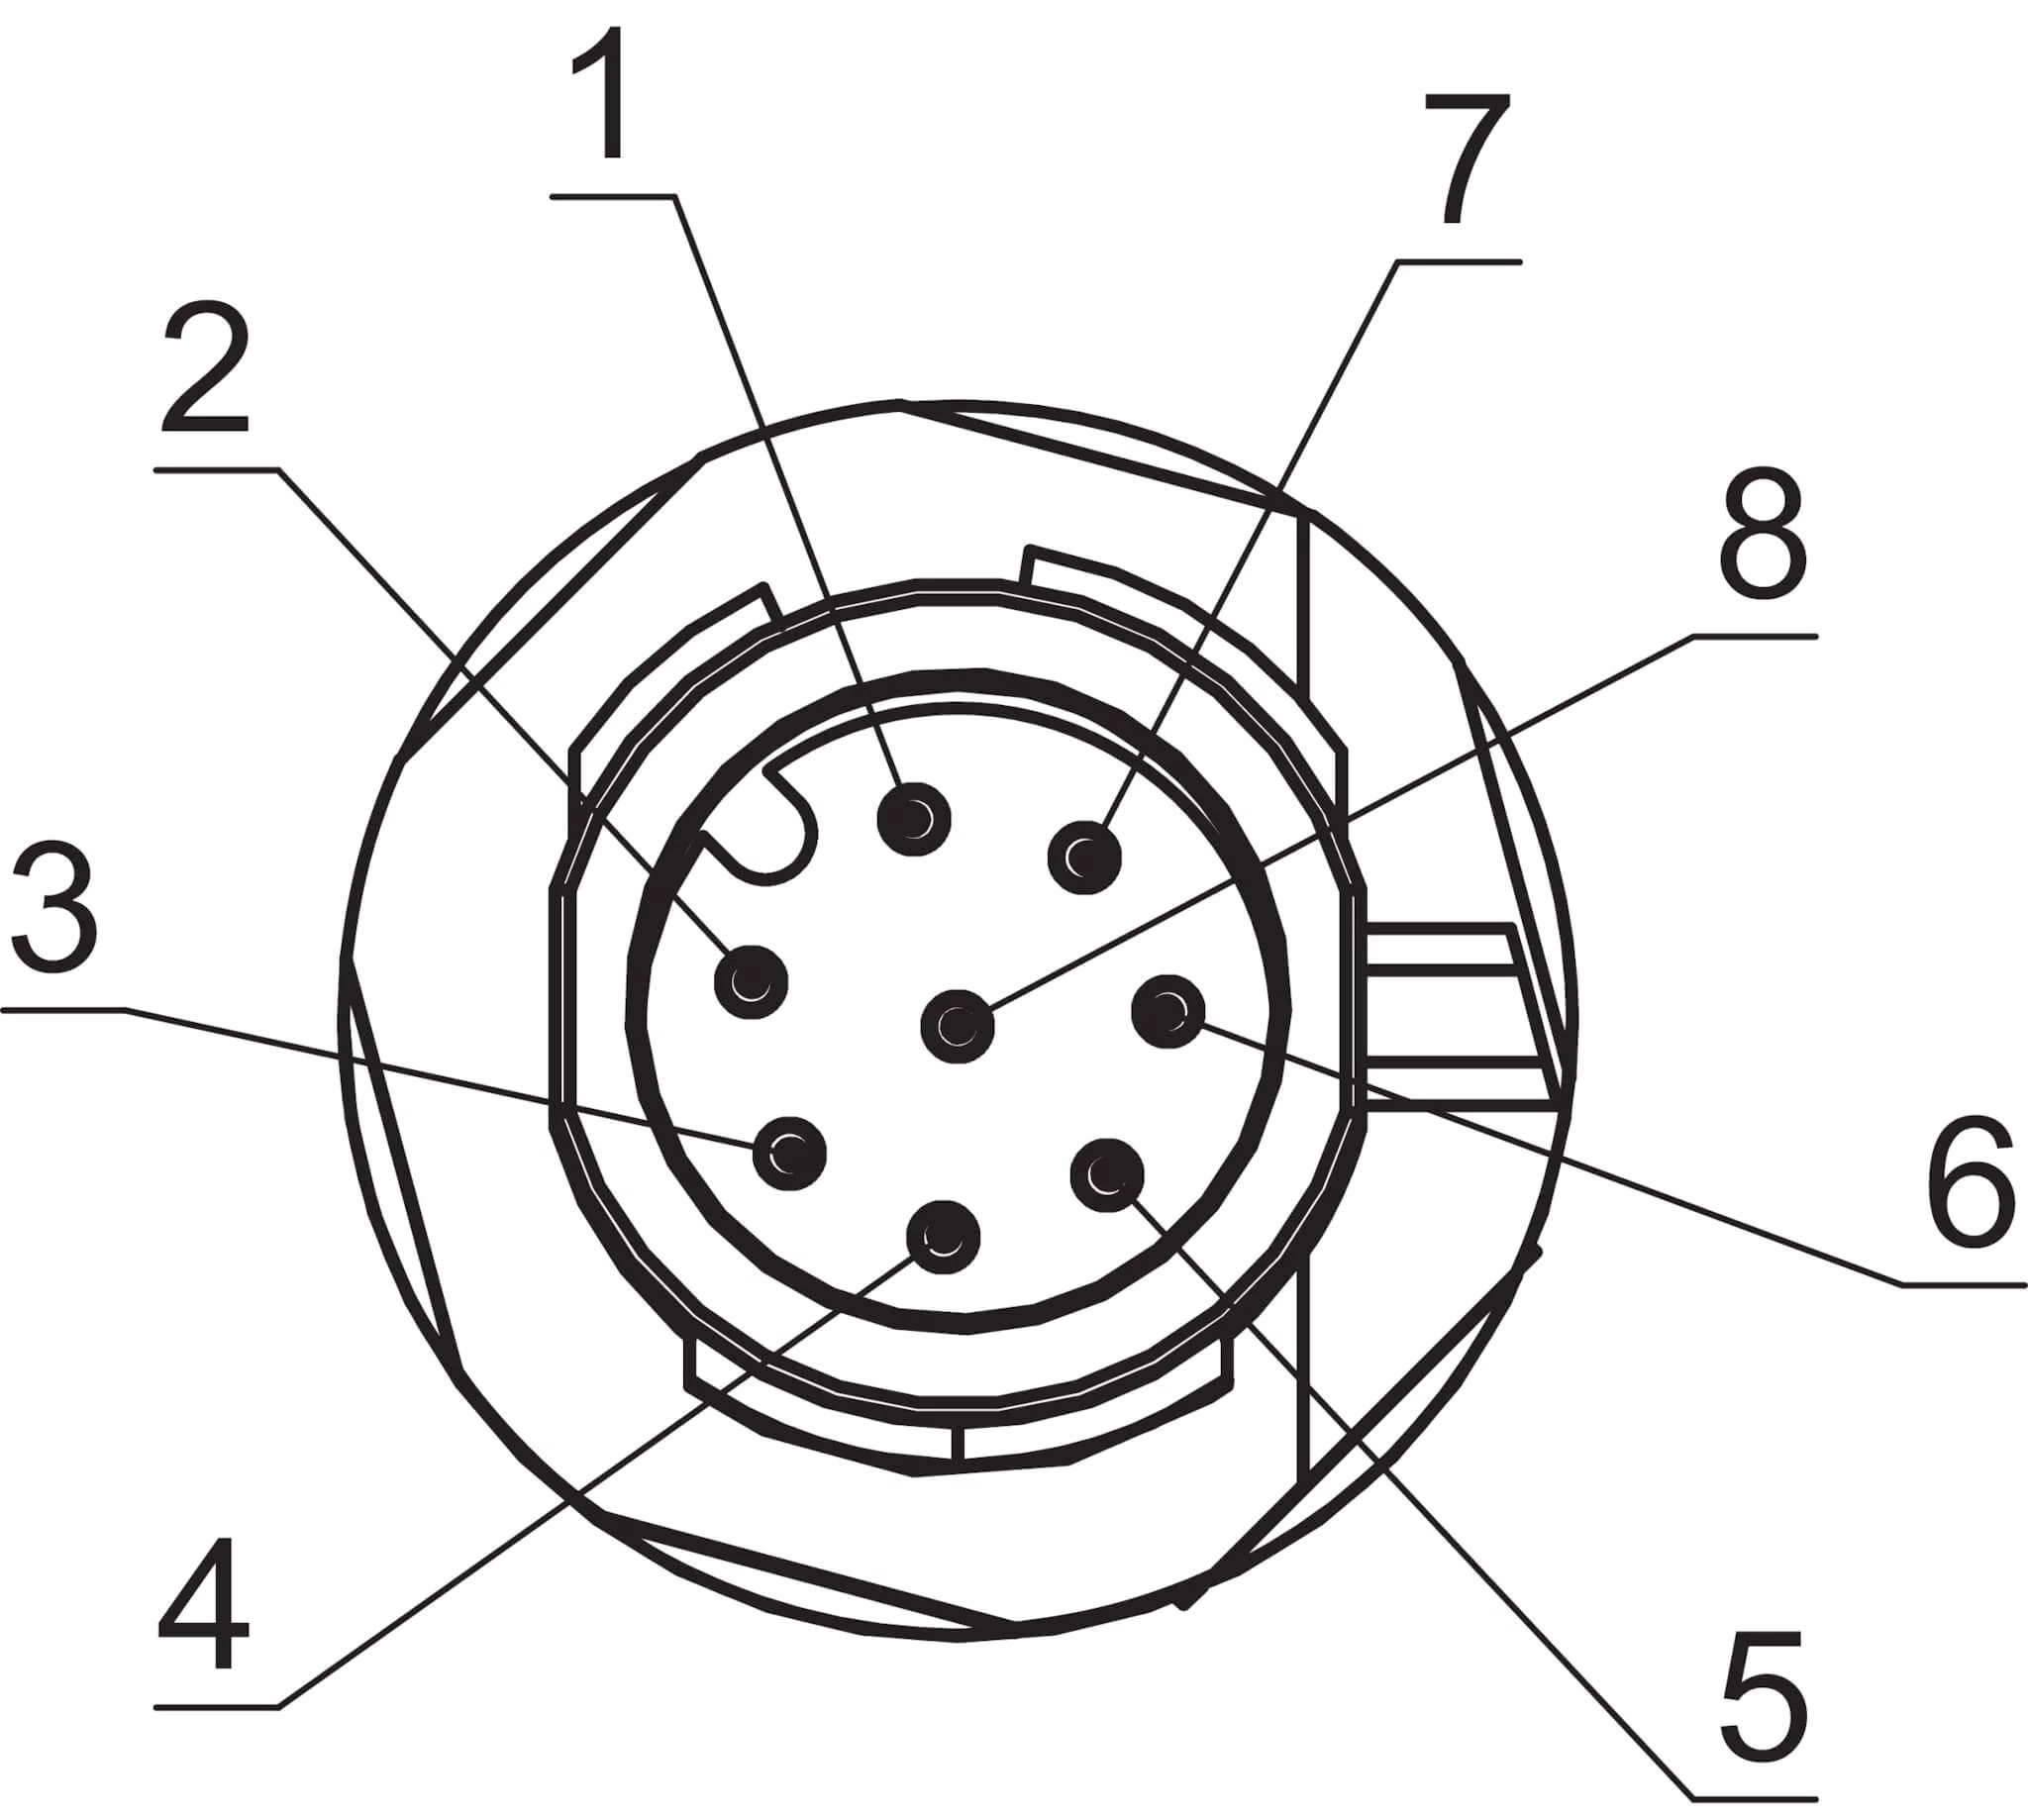 M12 Connector 4 Pin Wiring Diagram